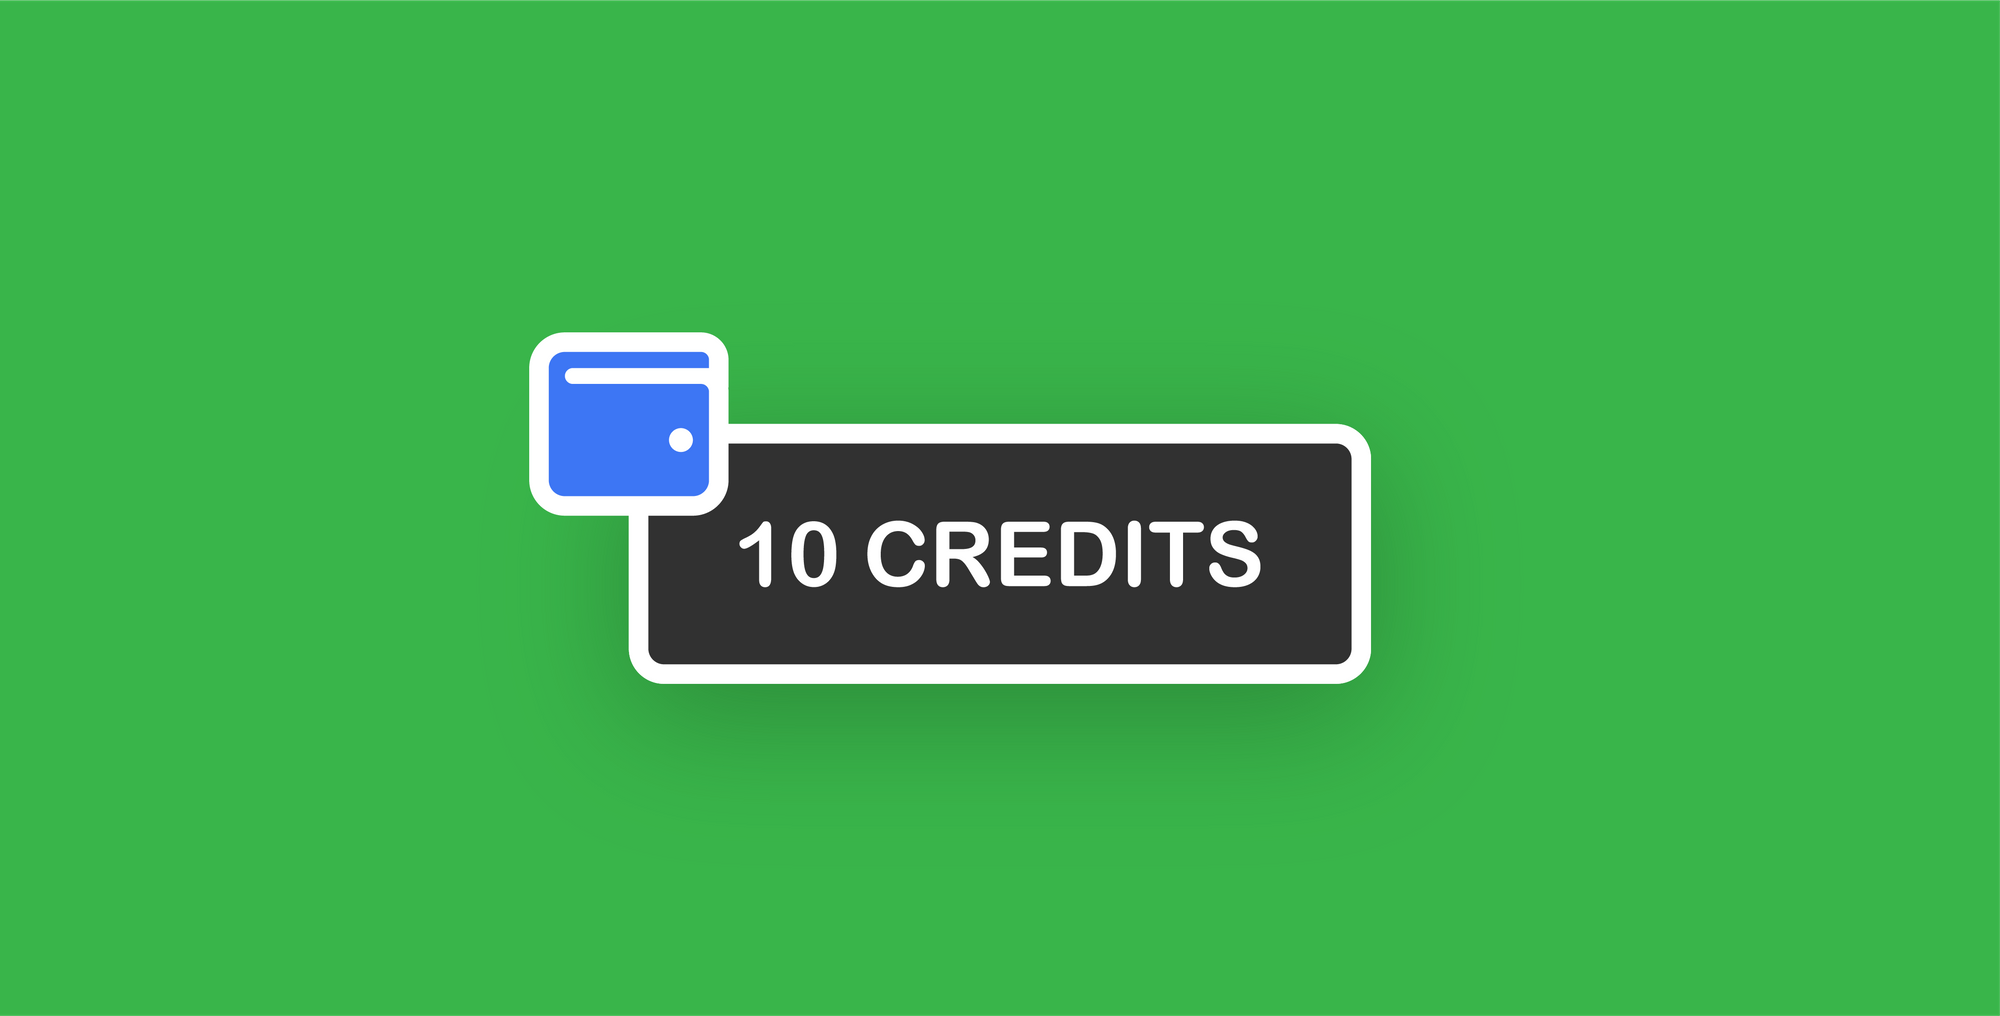 We are serious about purchasing credits. However, I need more trial credits for evaluation. Are you able to provide us with more trial credits?